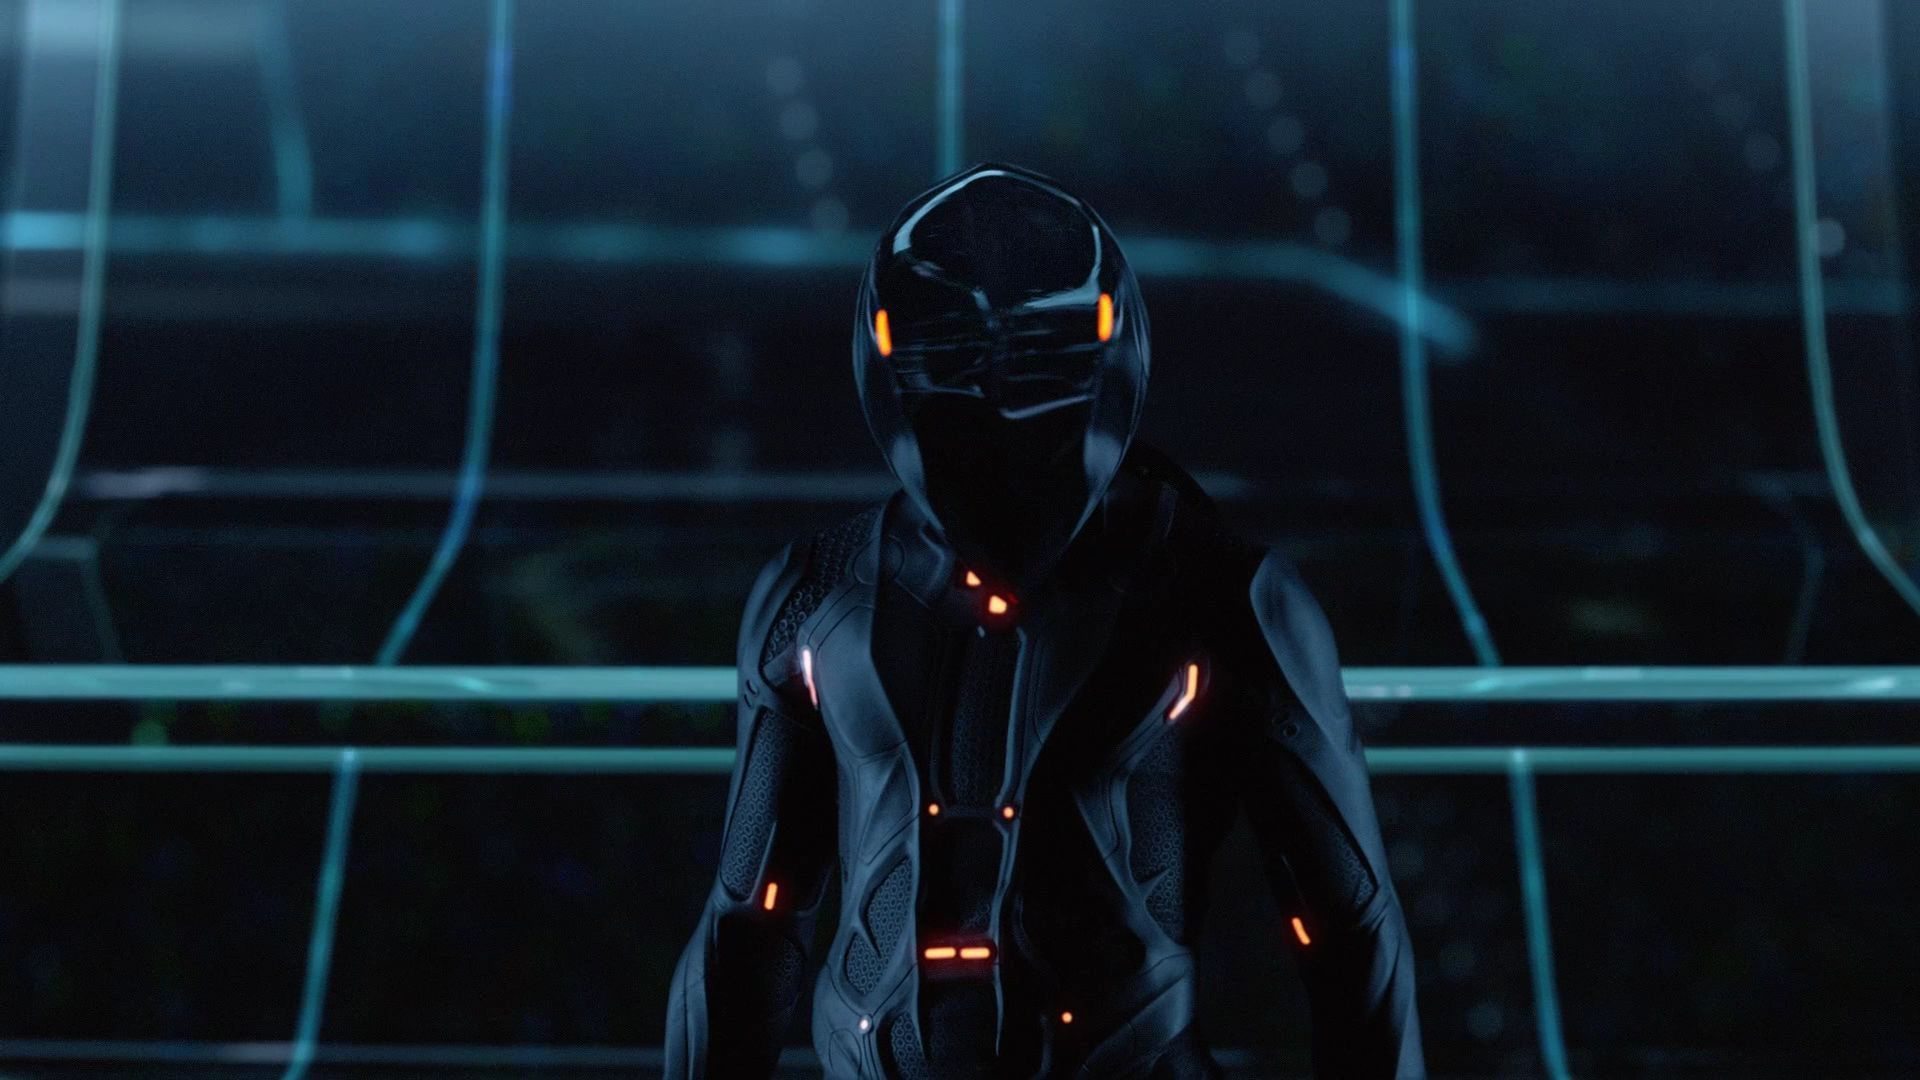 Tron Legacy Images TRON HD Wallpaper And Background Photos